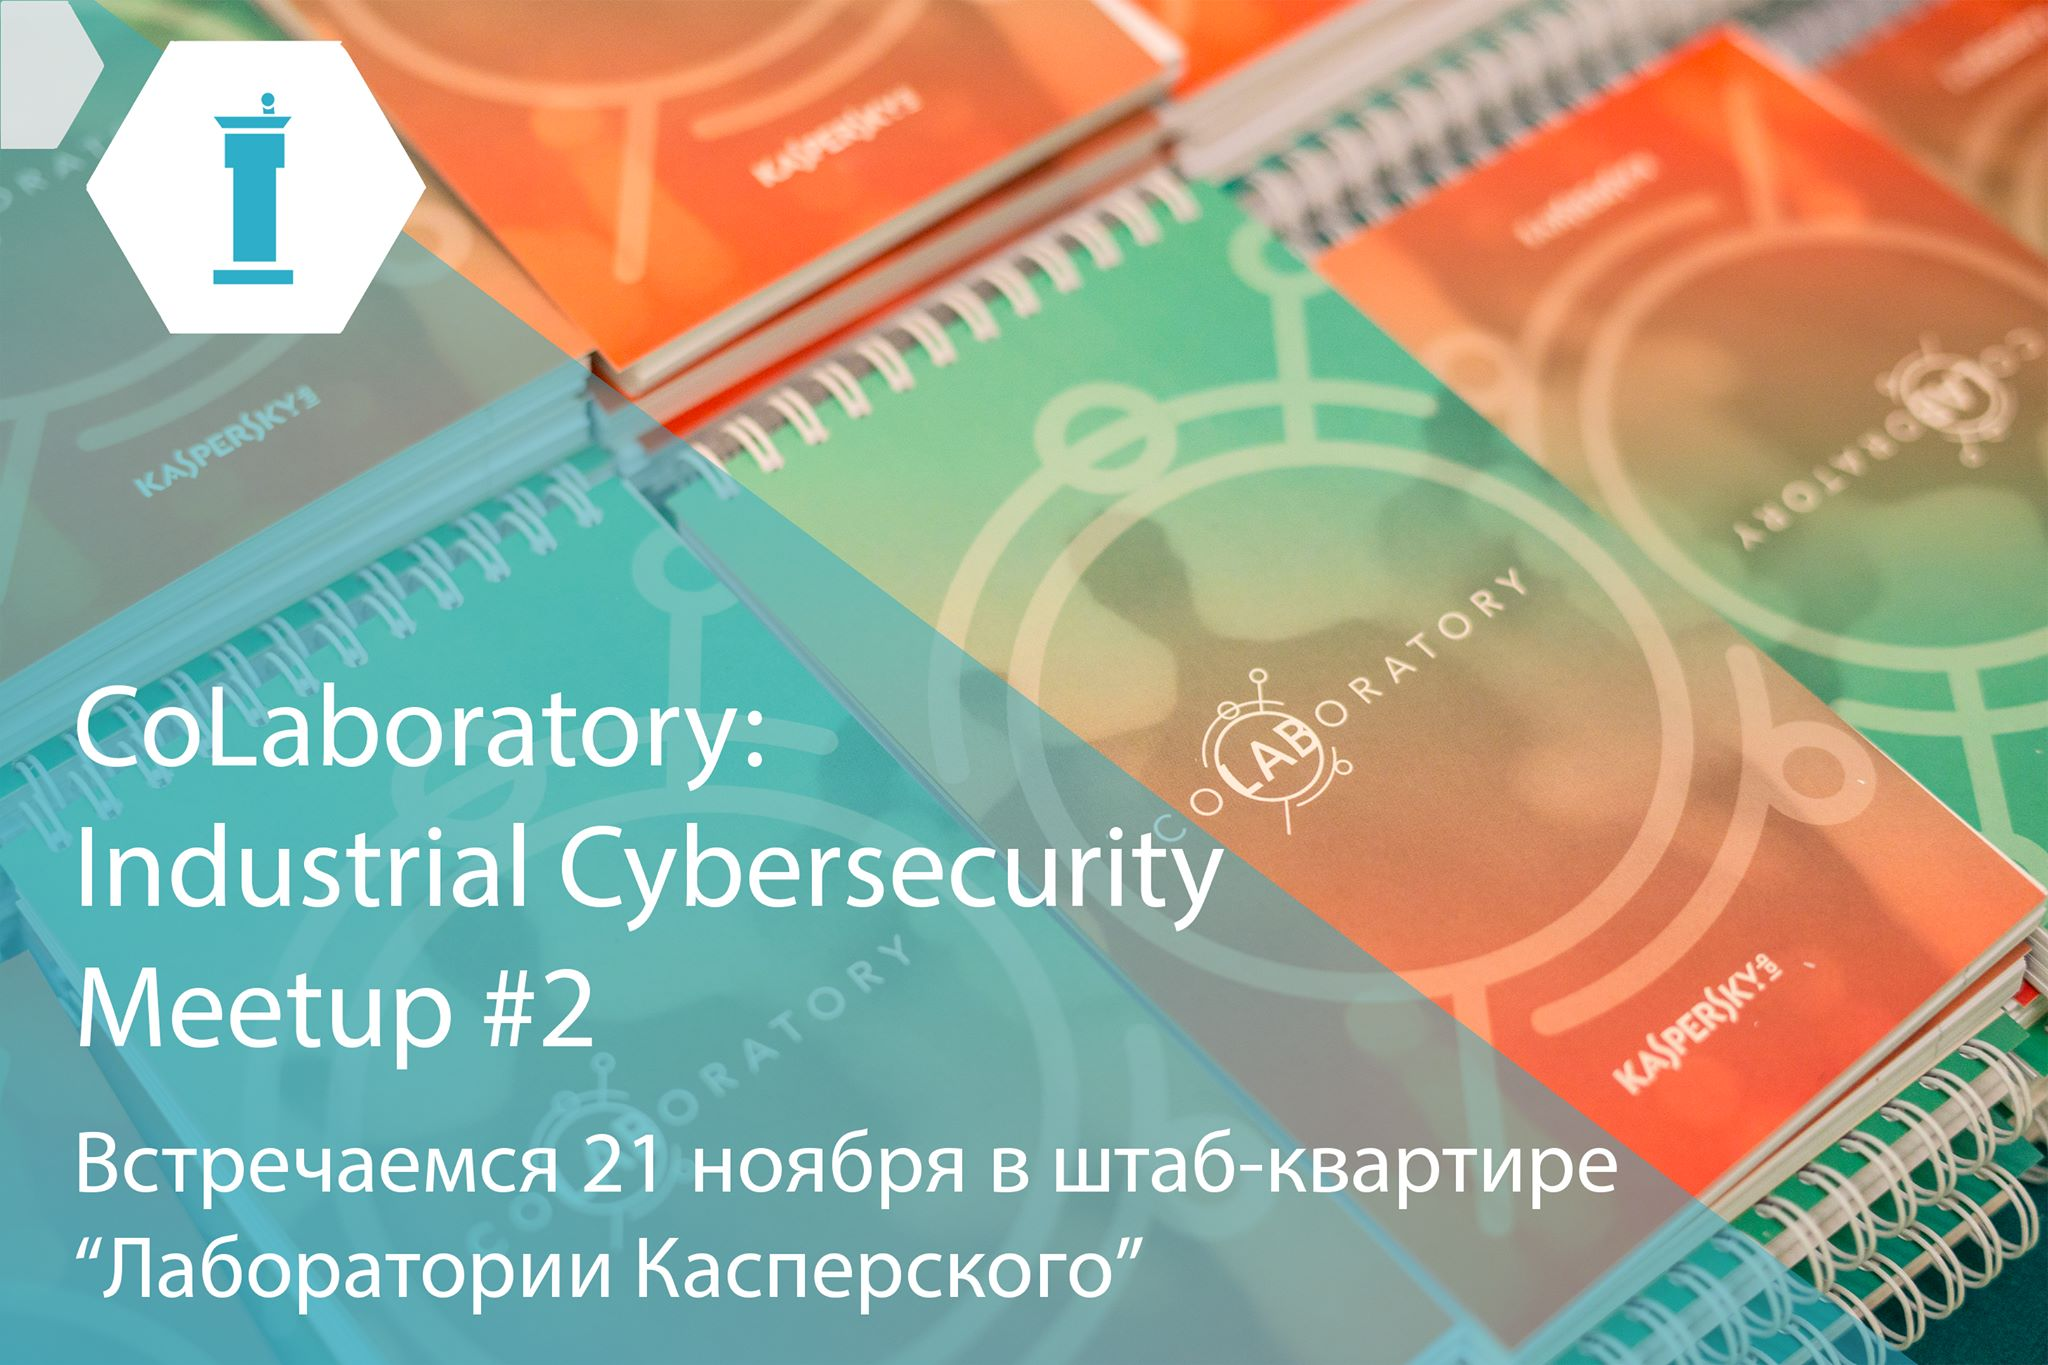 CoLaboratory: Industrial Cybersecurity Meetup #2